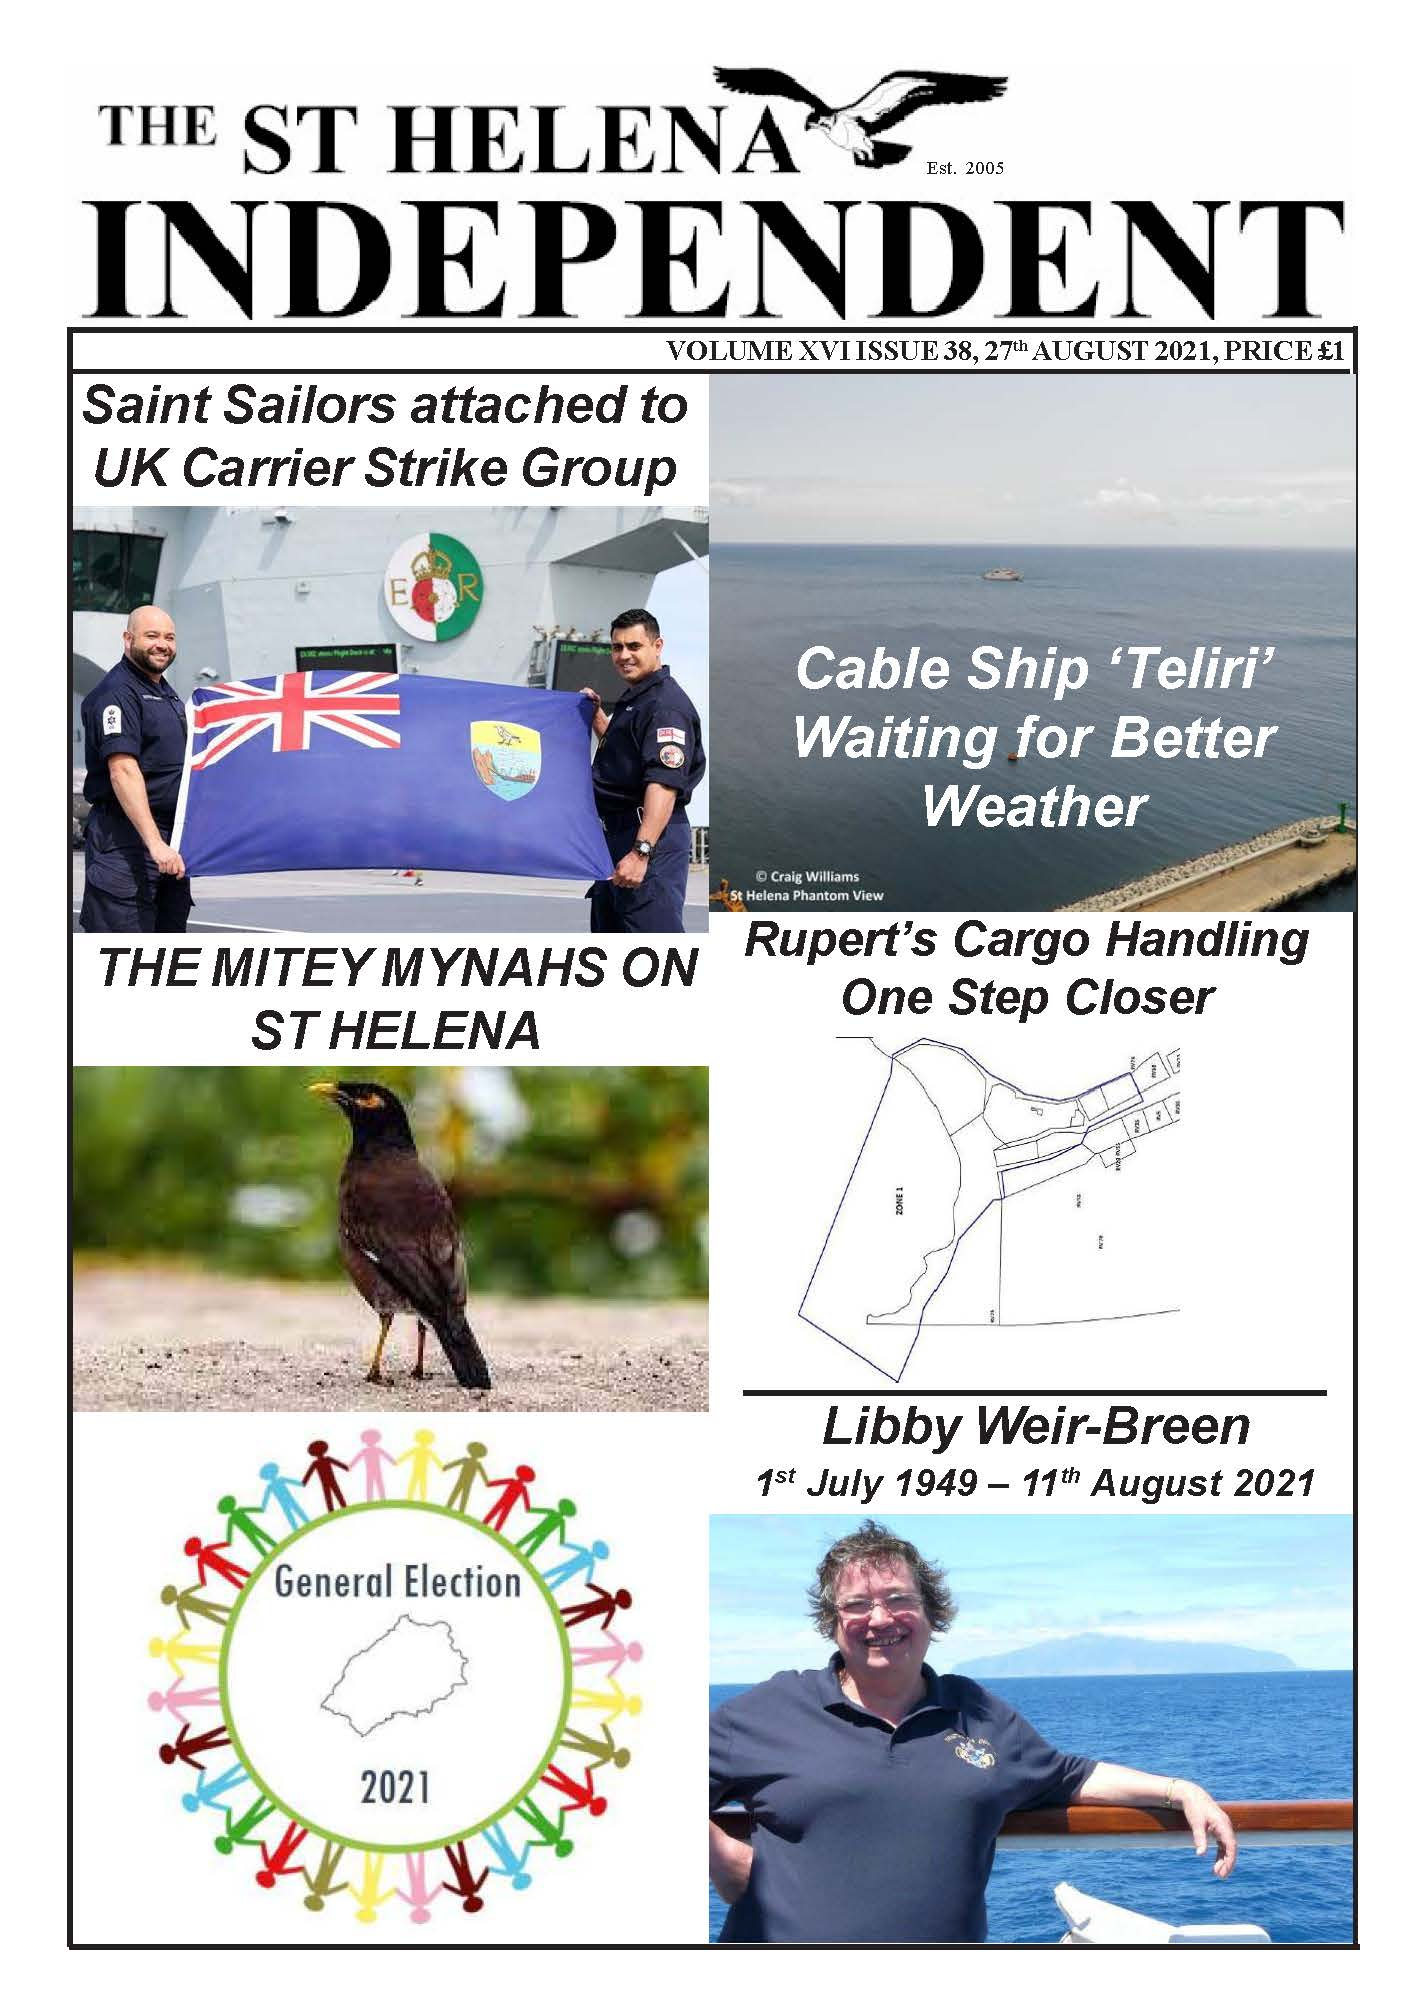 St Helena Independent 20210827 p1